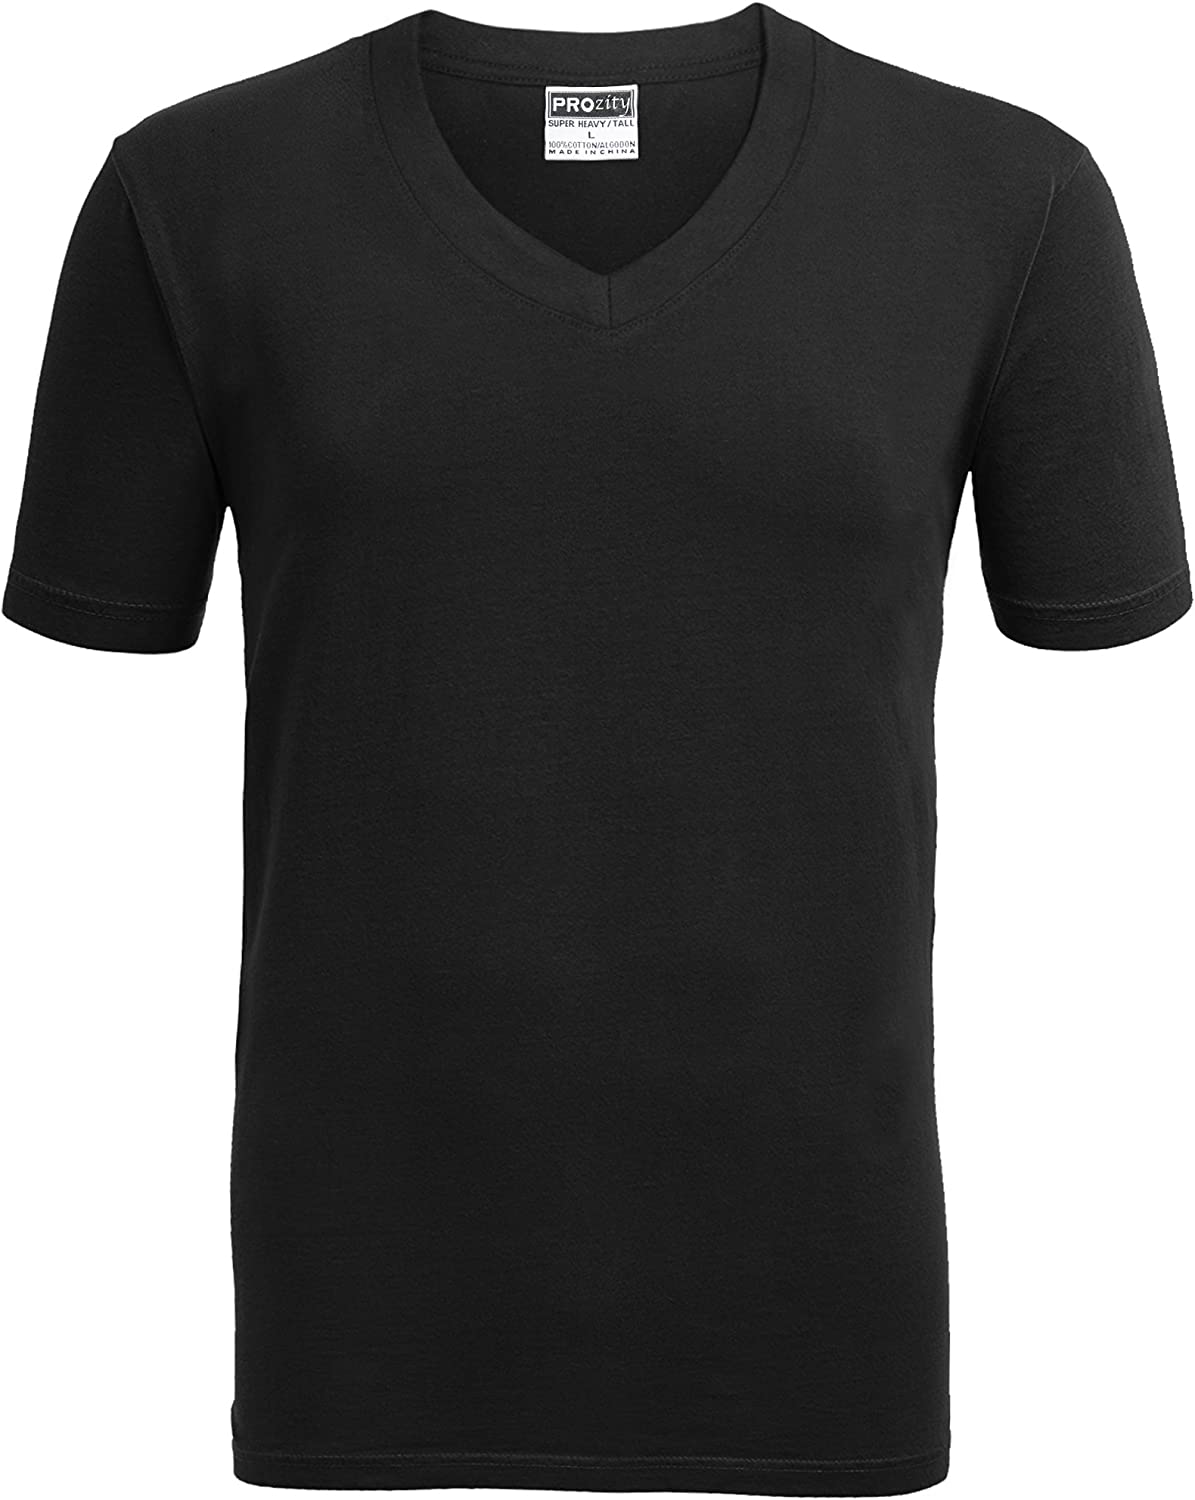 Alipolo Mens Big-Tall Heavyweight V-Neck Short-Sleeve T-Shirt Black XL